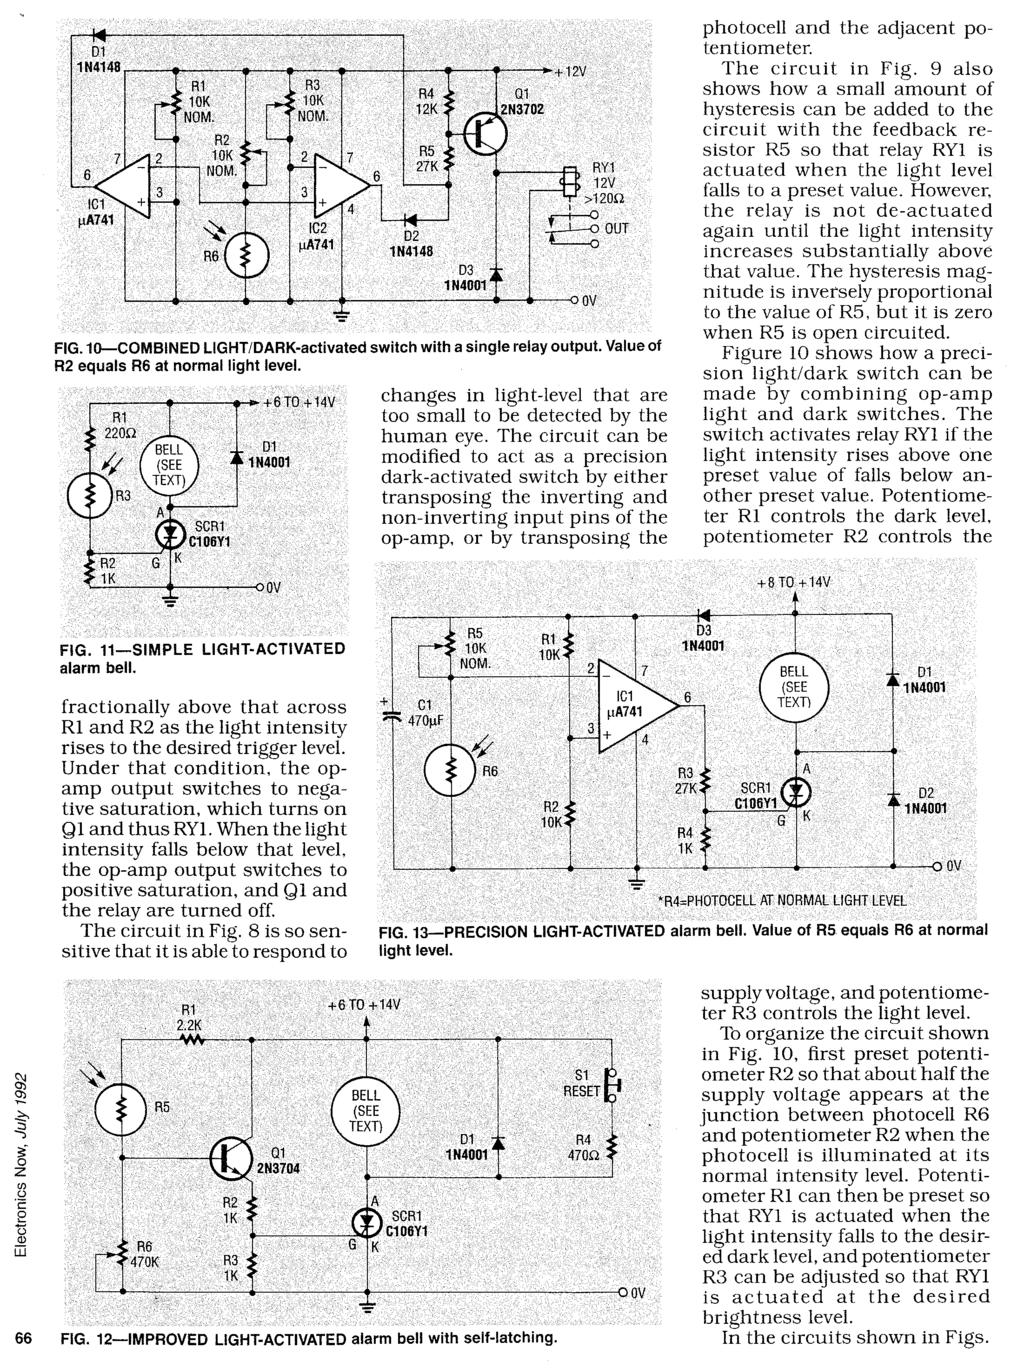 Photosensitive Devices Pdf Photocells Amplifiers Circuit Schematic Diagram Fig 12 Improved Light Activated Alarm Bell With Self Latching Supply